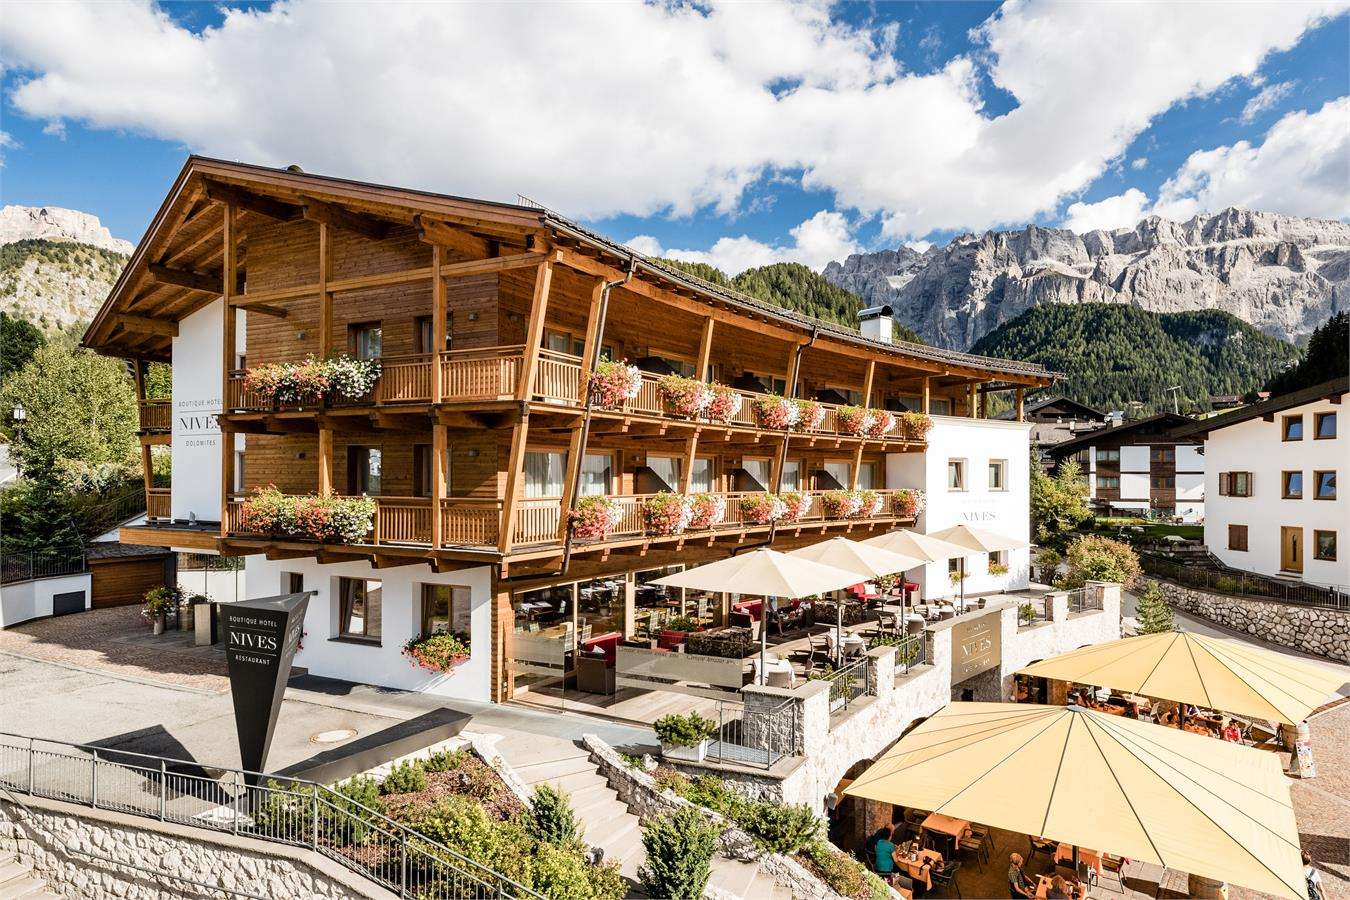 boutique hotel nives luxury design in the dolomites